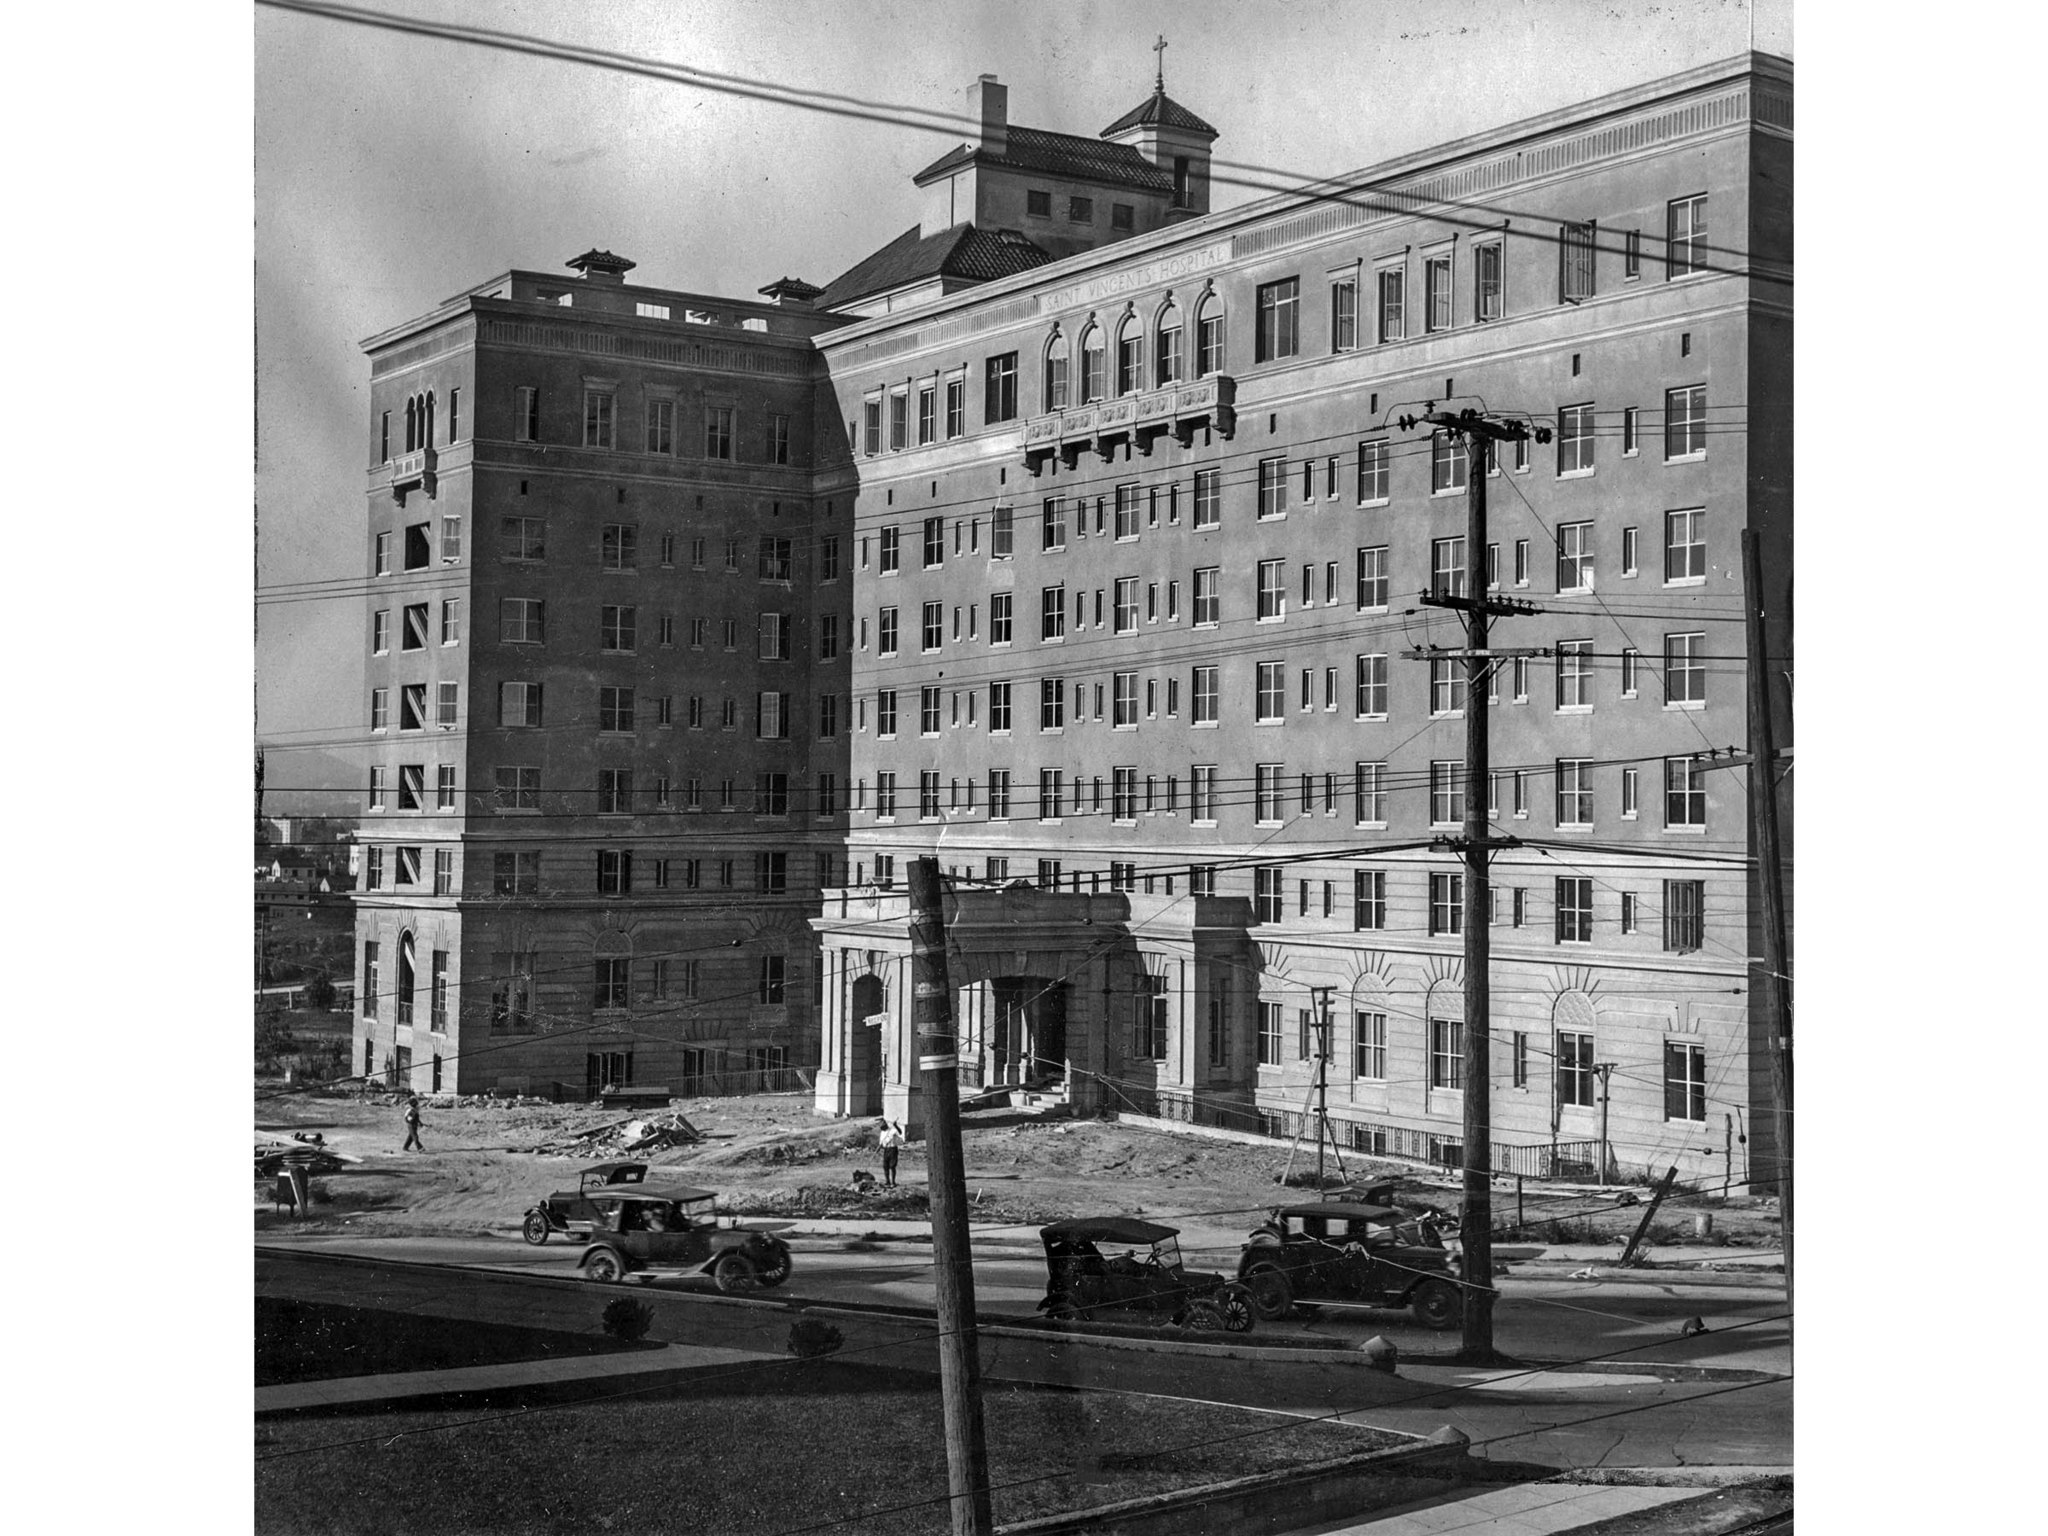 Nov. 1927: The new St. Vincent Hospital at Alvarado St. and 3rd St. in Los Angeles. This photo appea